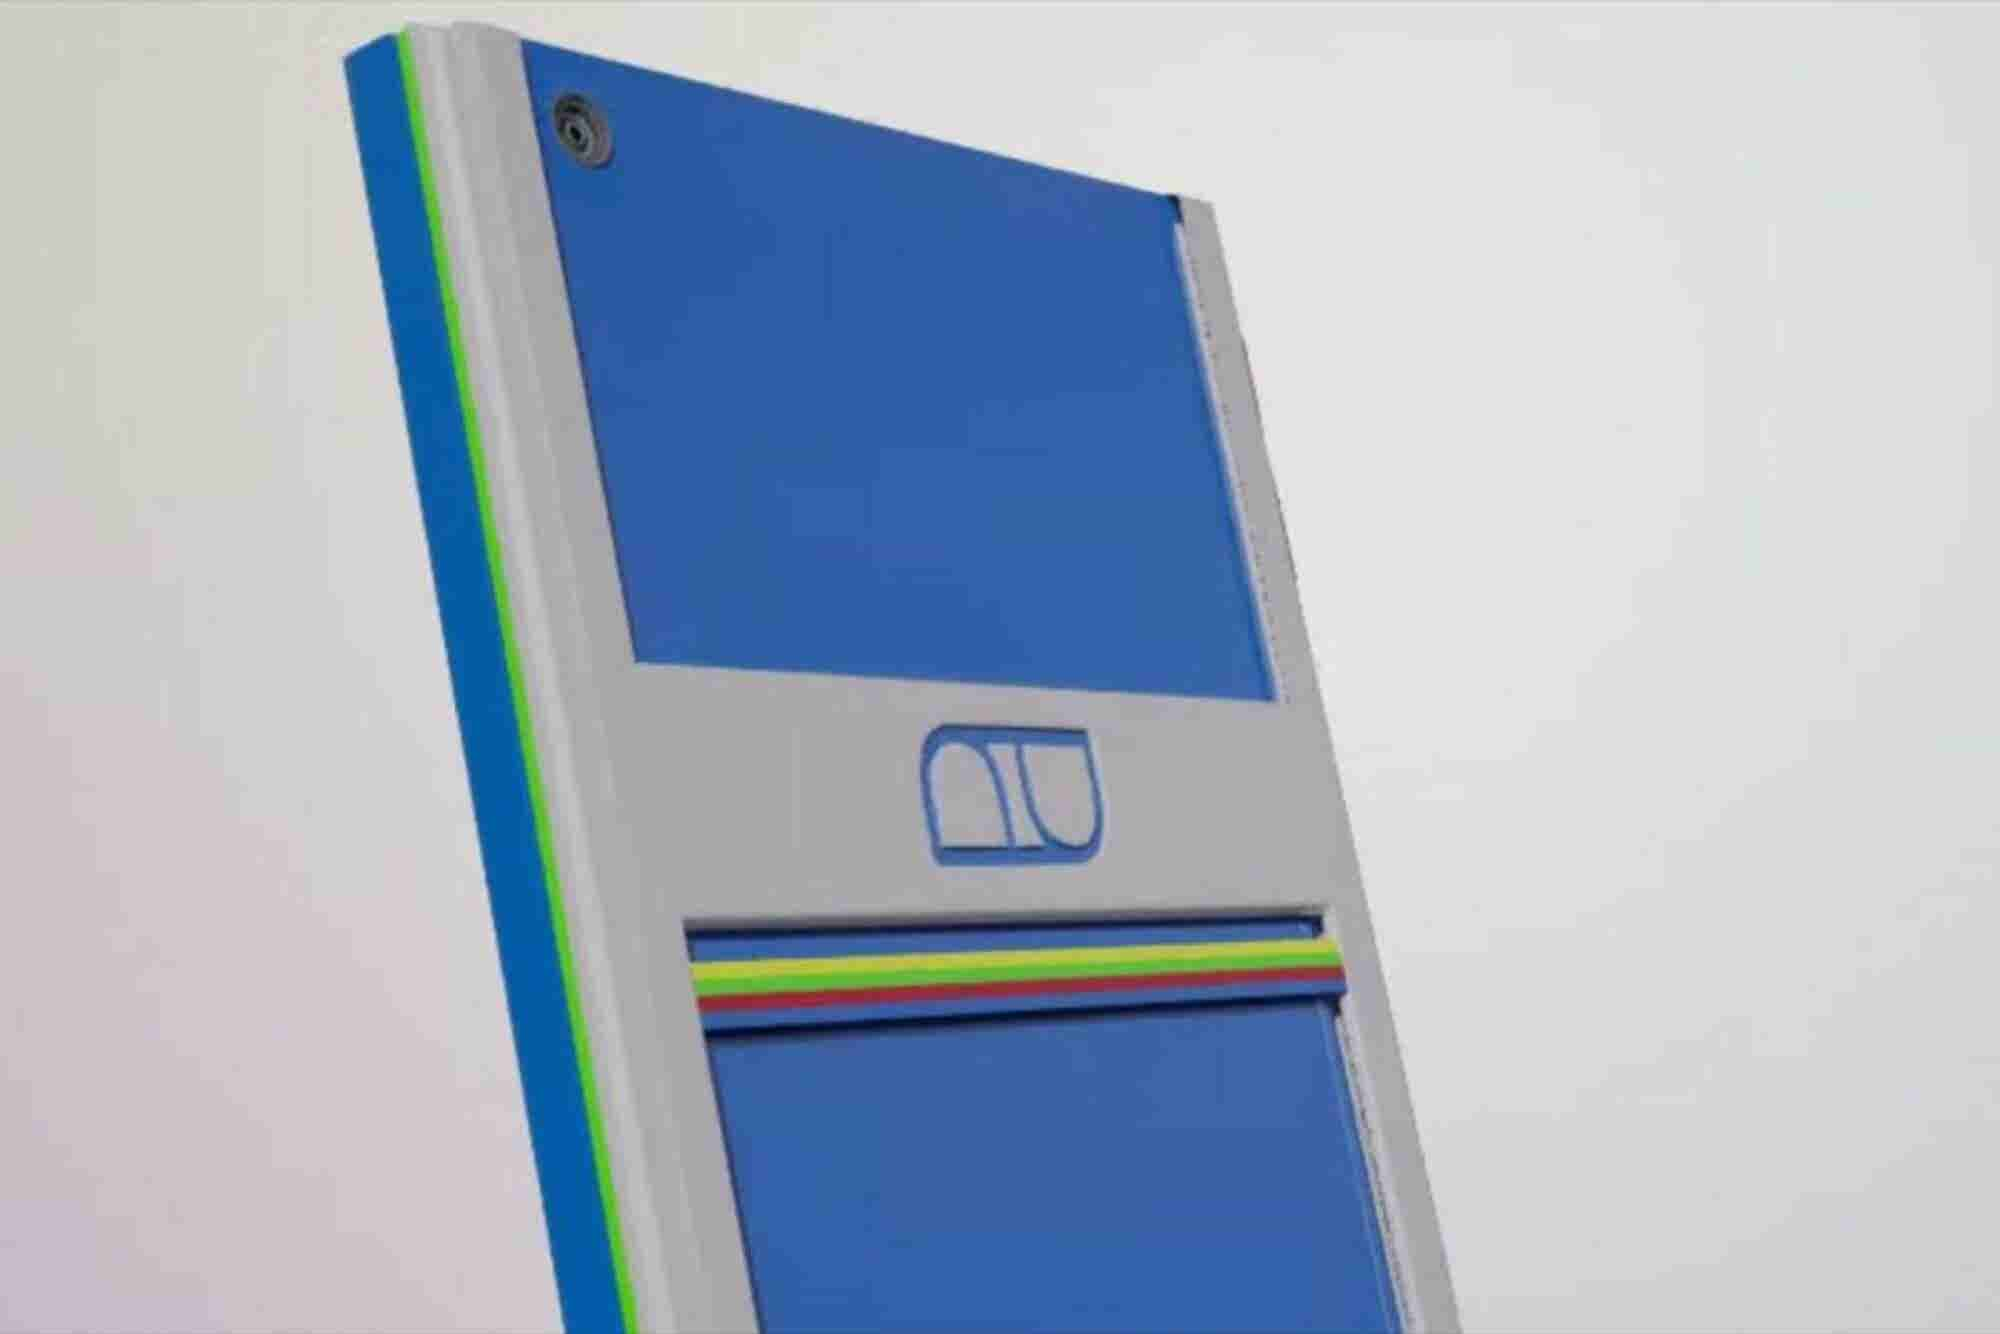 Google Isn't the Only One Working on a Modular Smartphone